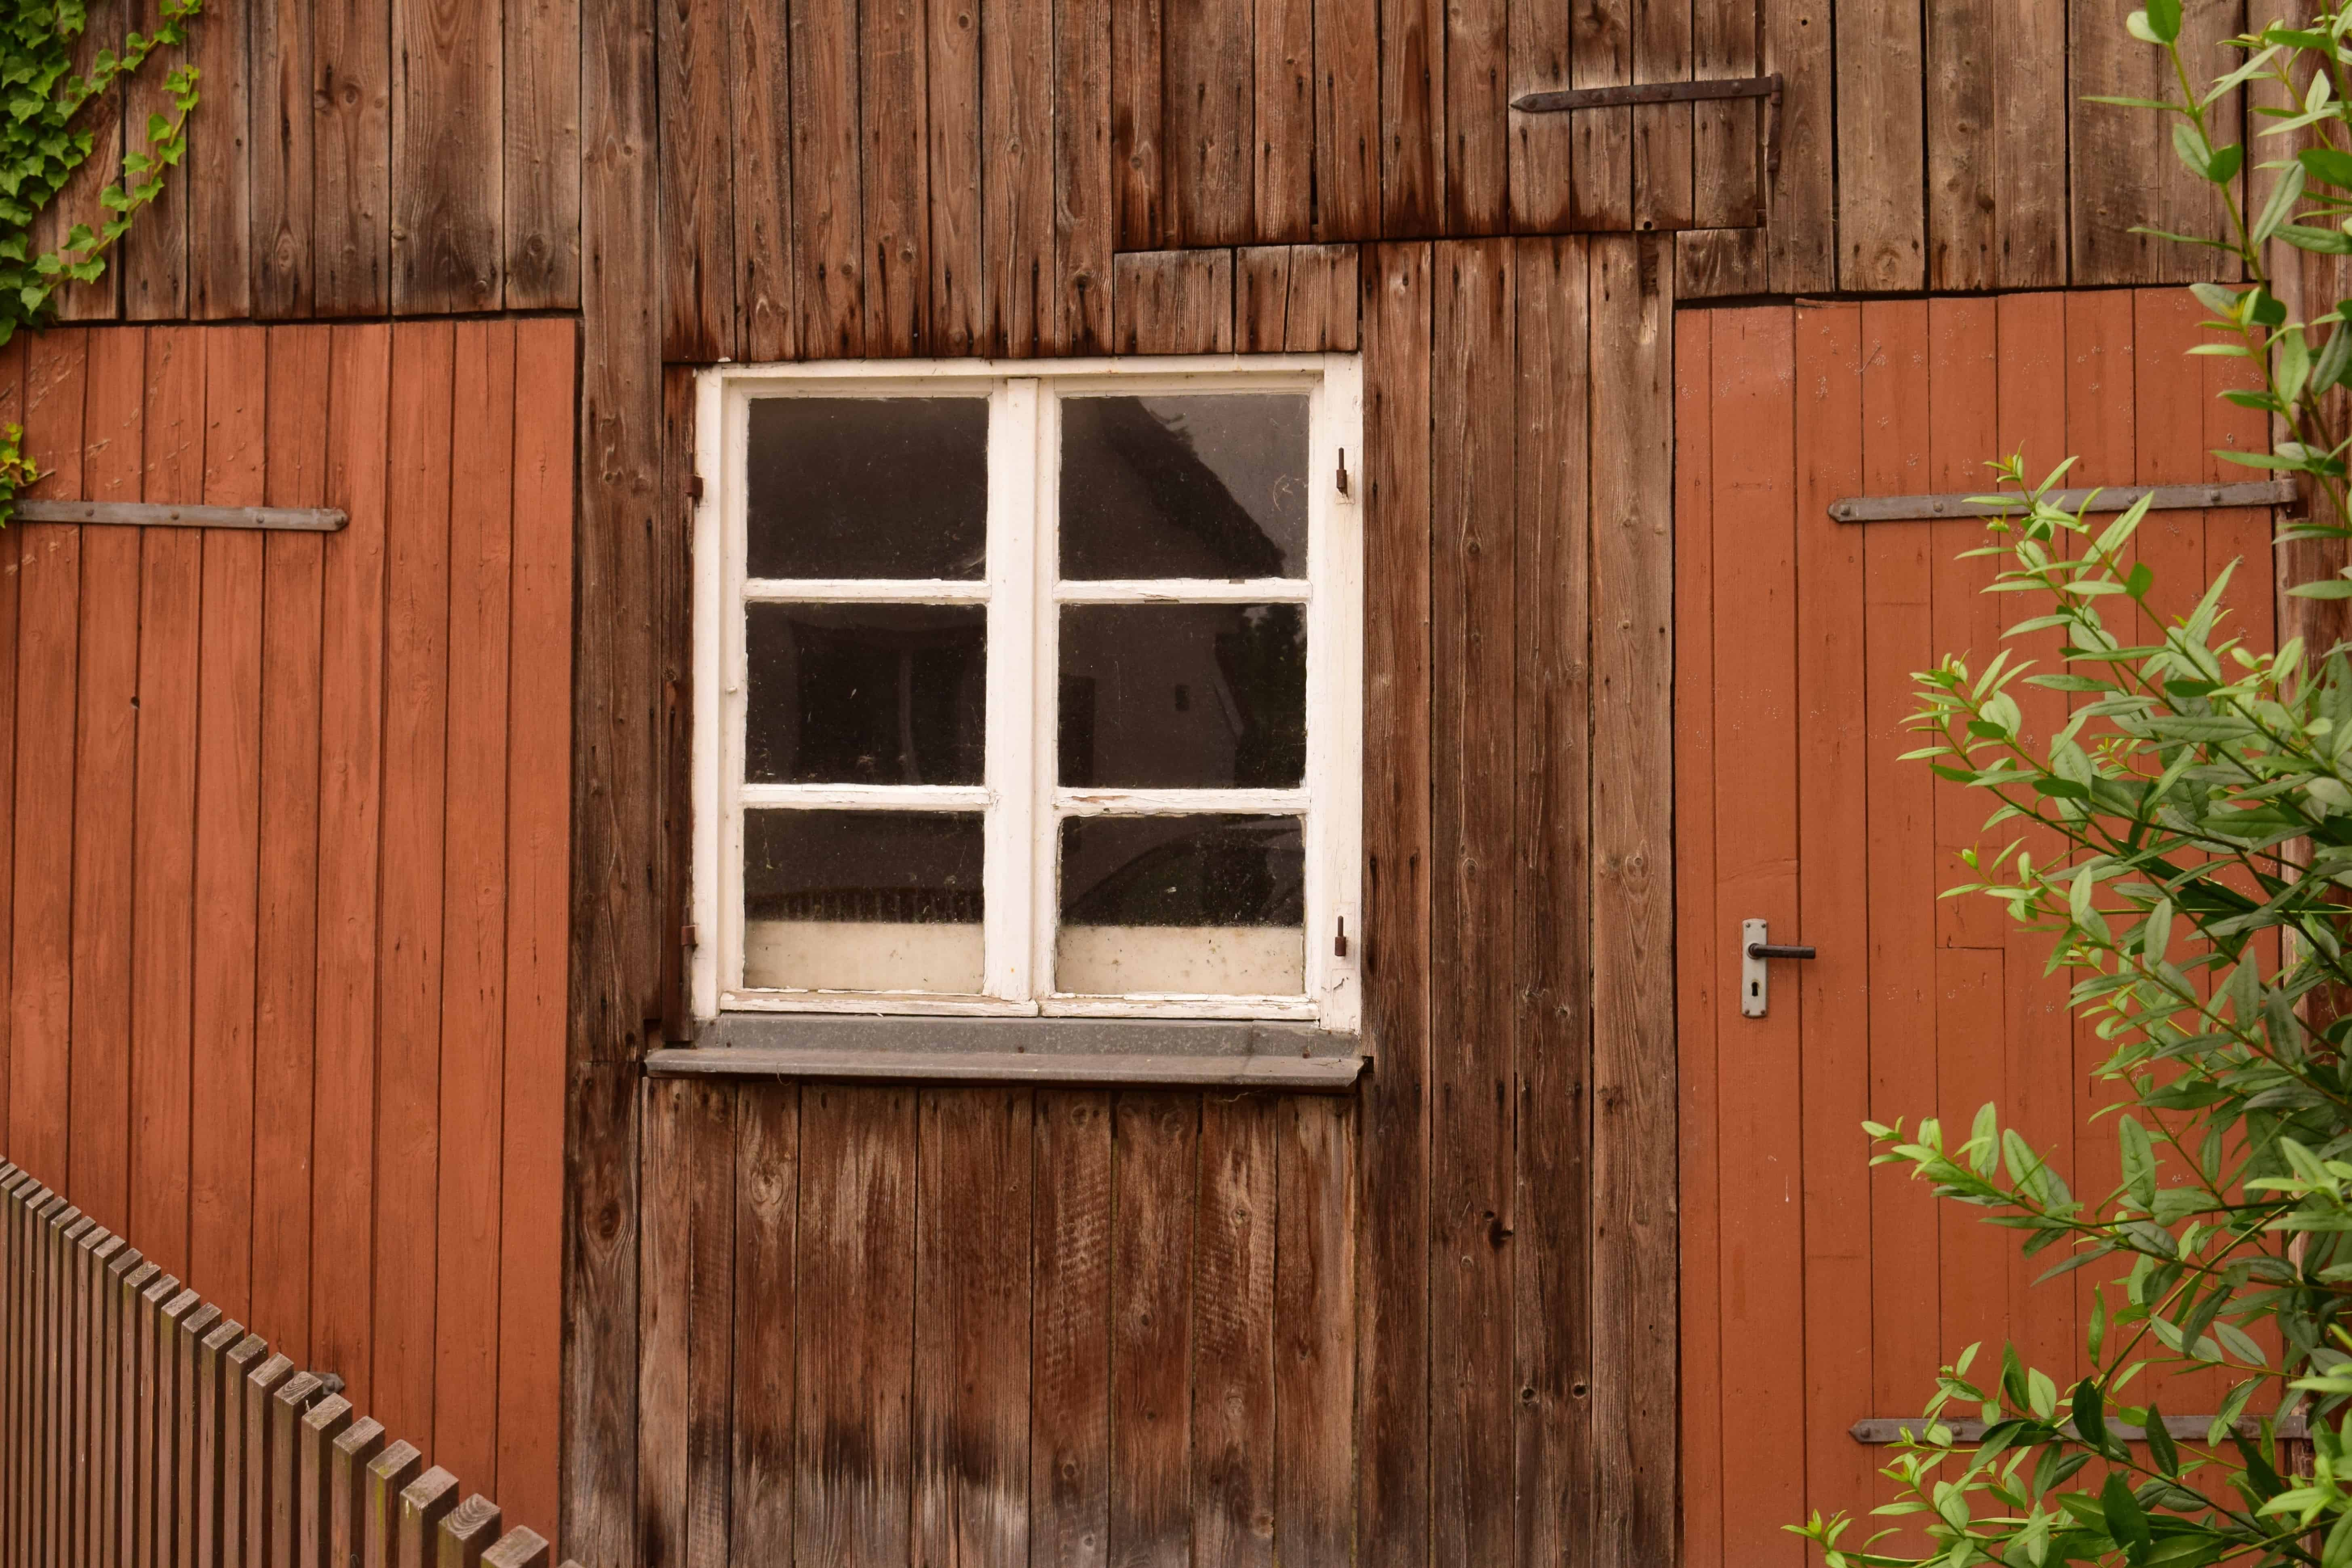 Free picture: window, architecture, house, wooden, door, rustic, old ...